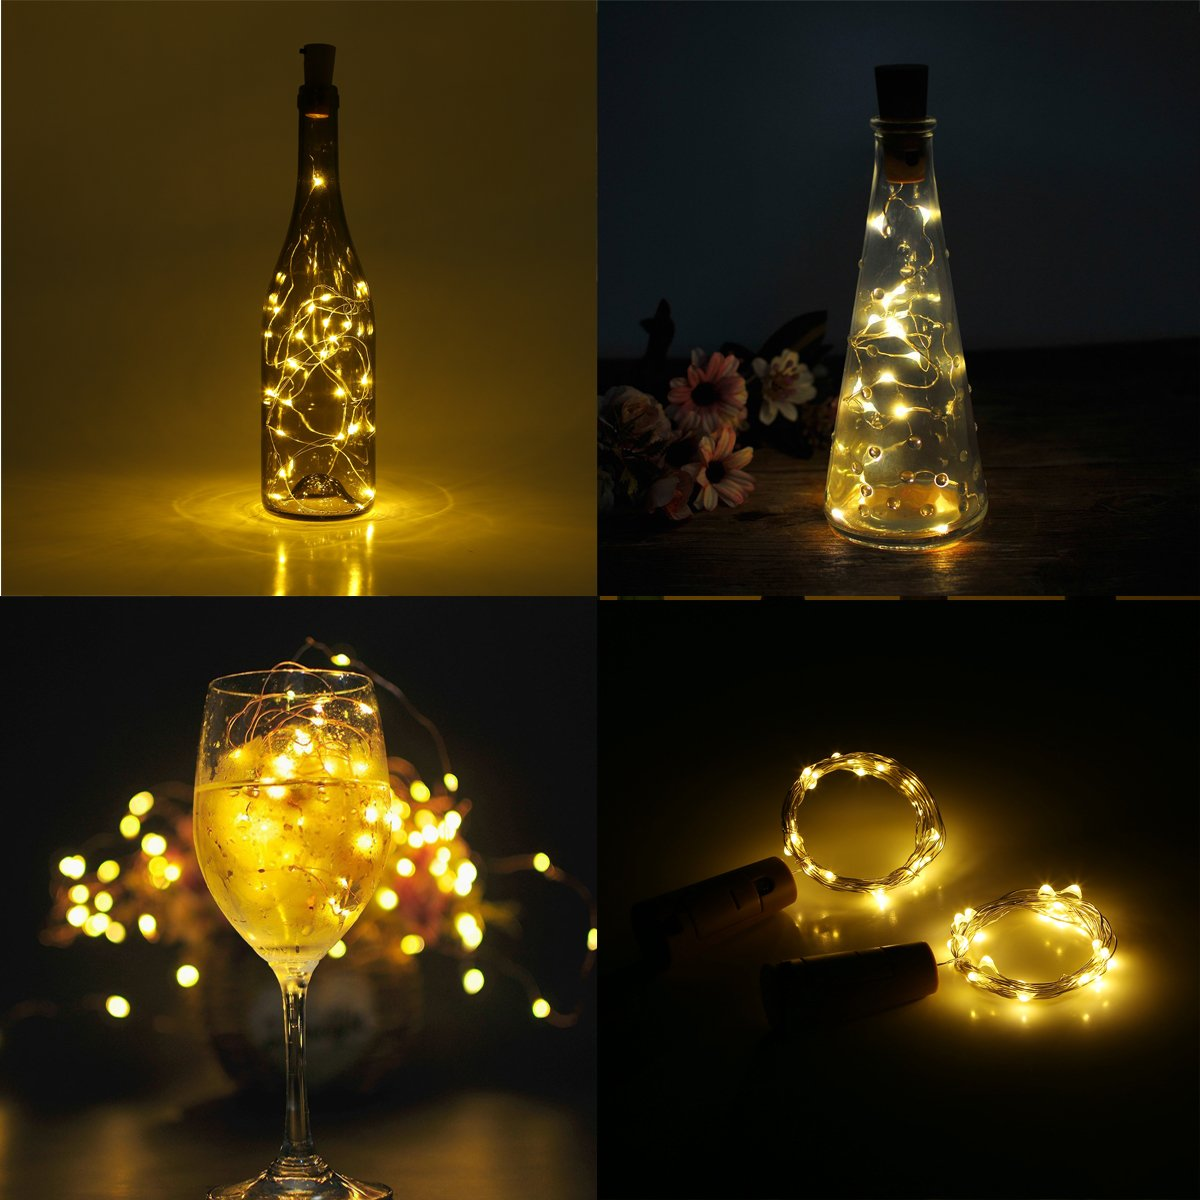 wine lighting. Wine Bottles Cork Lights, FVTLED 6 Pack Copper Wire String Lights 20 LEDs Starry Fairy Light Battery Powered For Bottle DIY, Christmas, Valentine Wedding Lighting